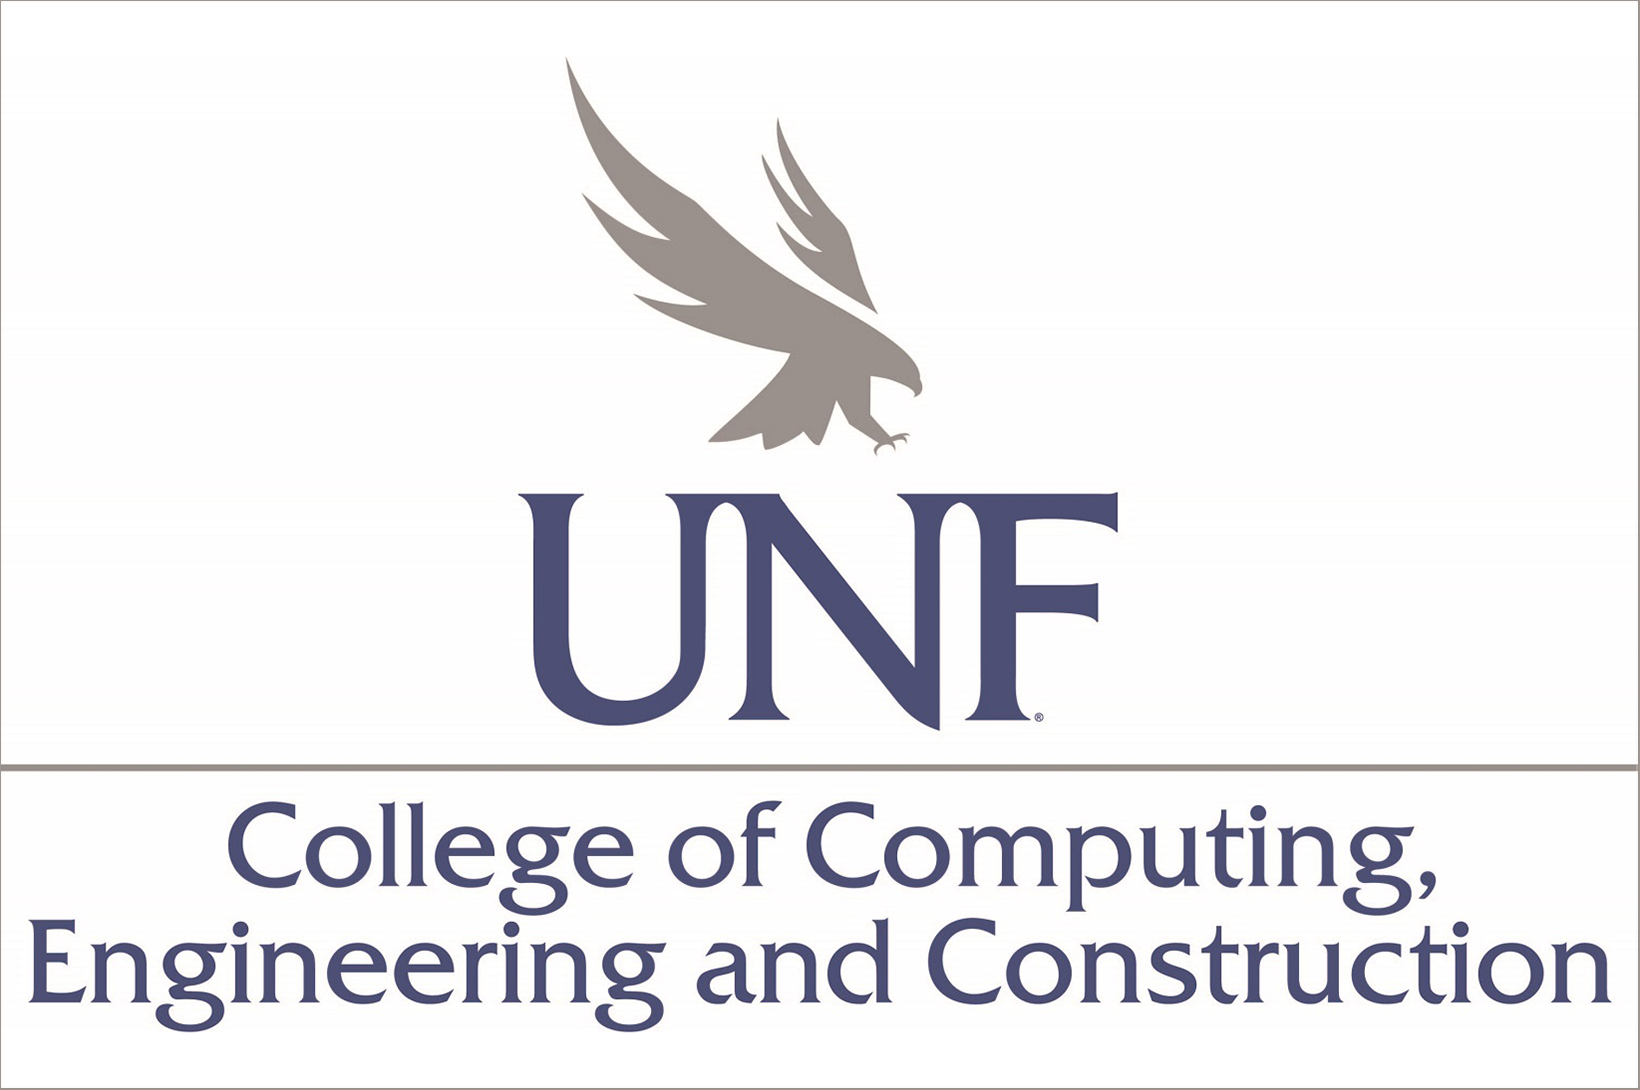 College of Computing, Engineering and Construction logo